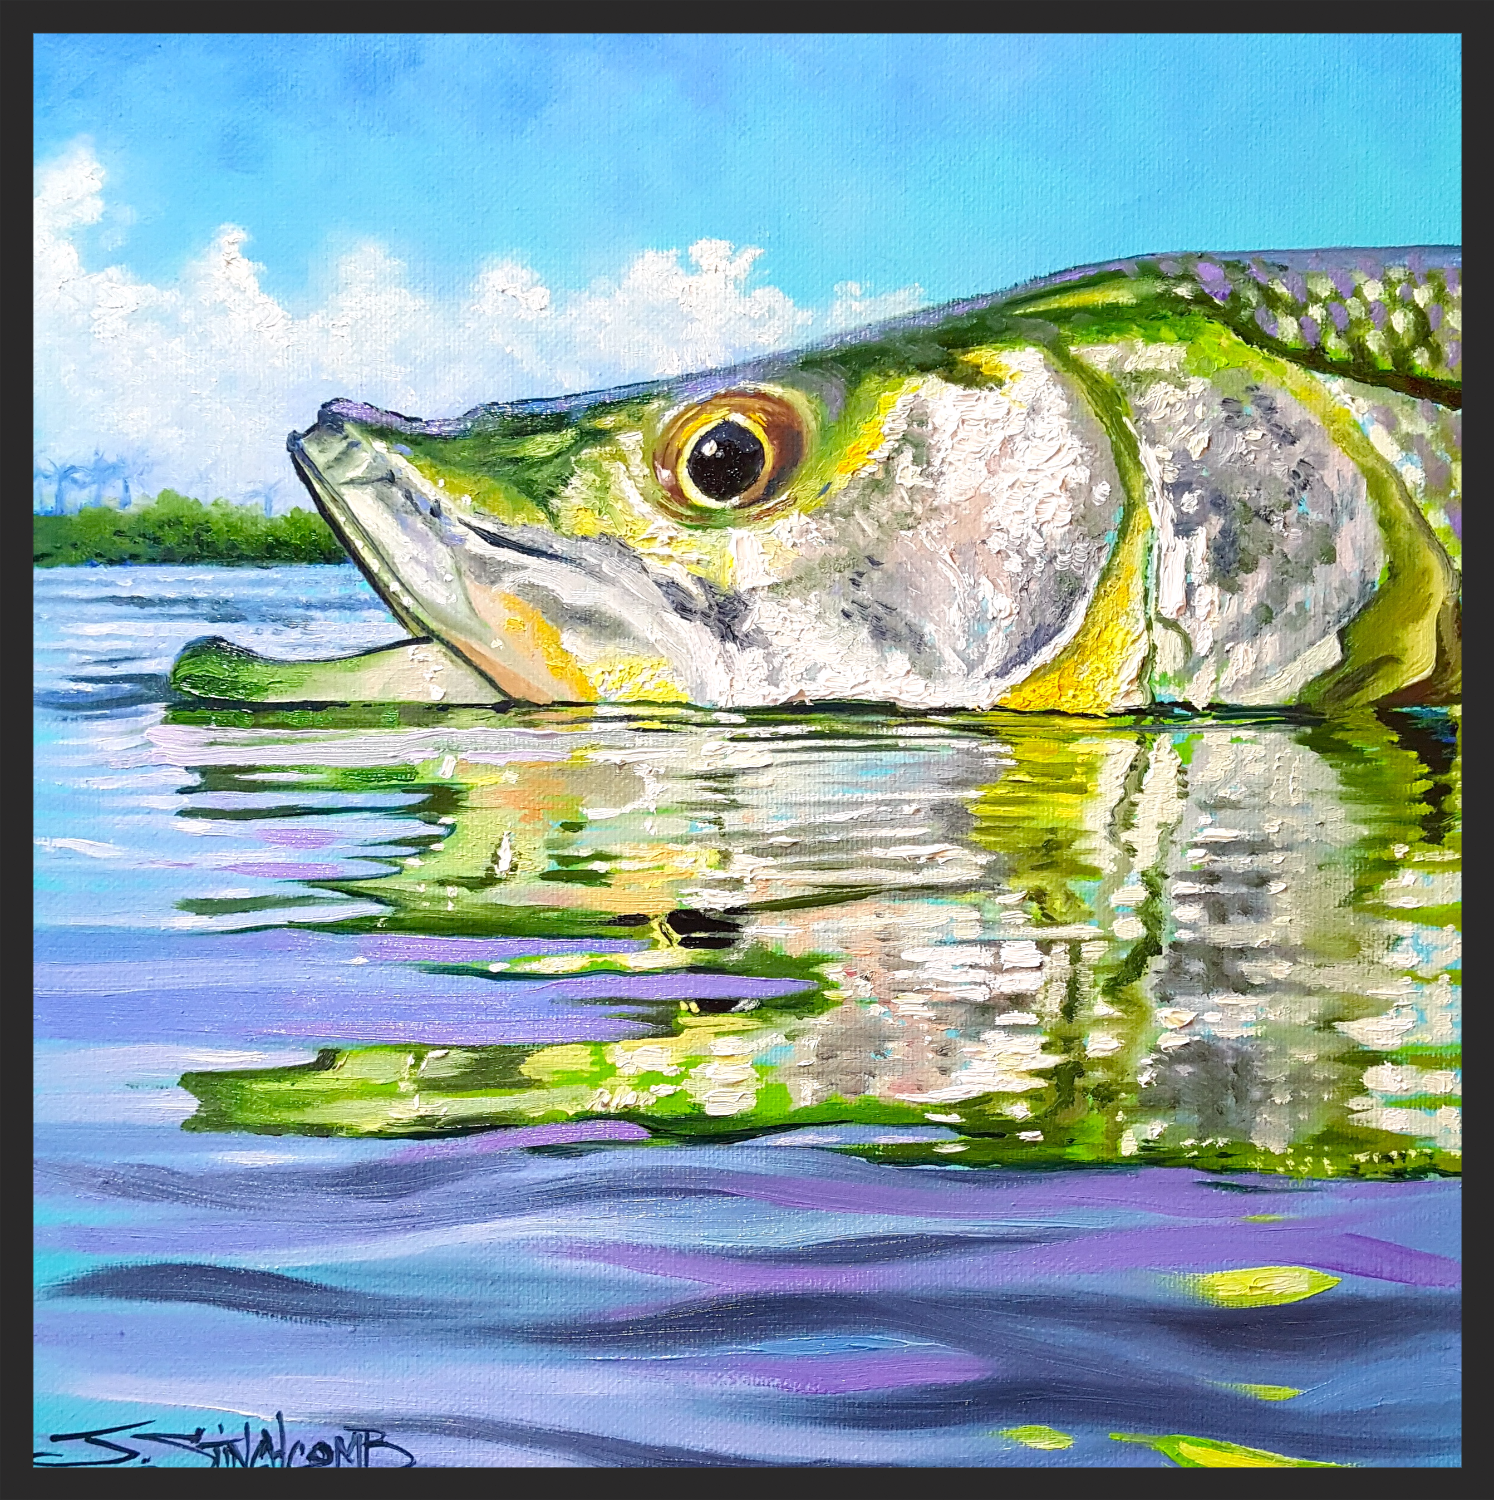 """Afternoon snook"" 2/3 series"